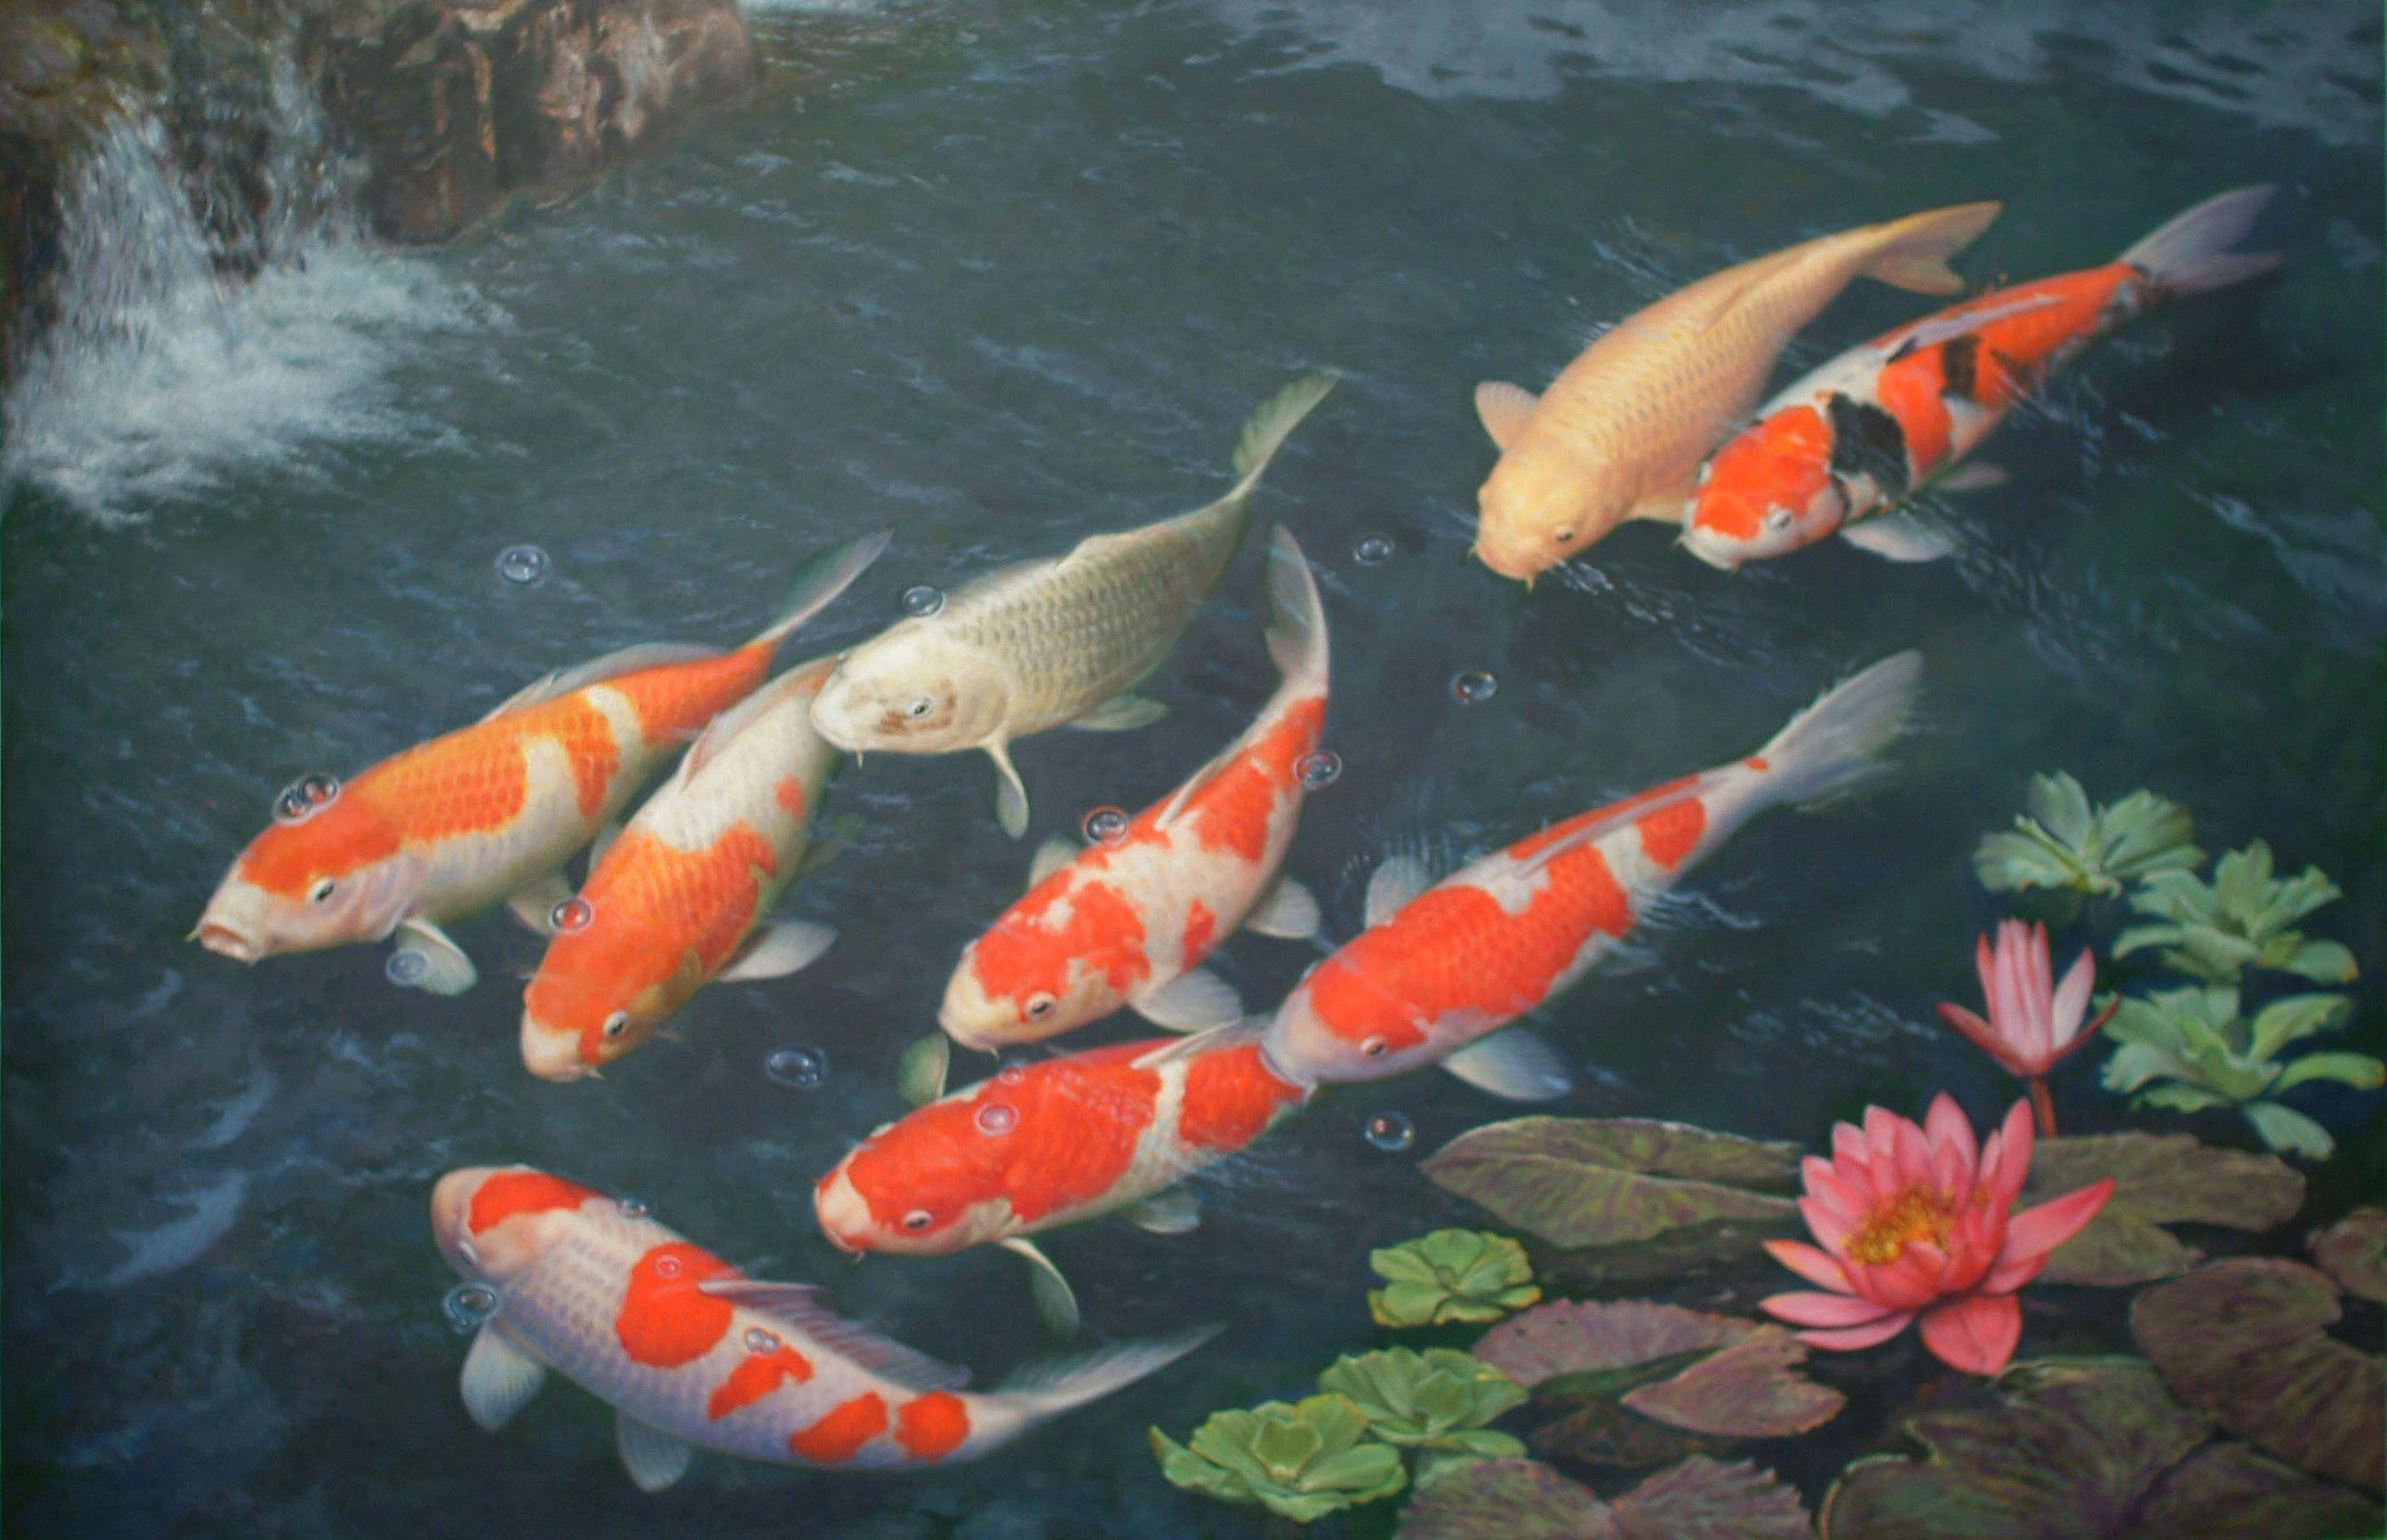 Koi fish wallpapers wallpaper cave for Koi carp fish pond